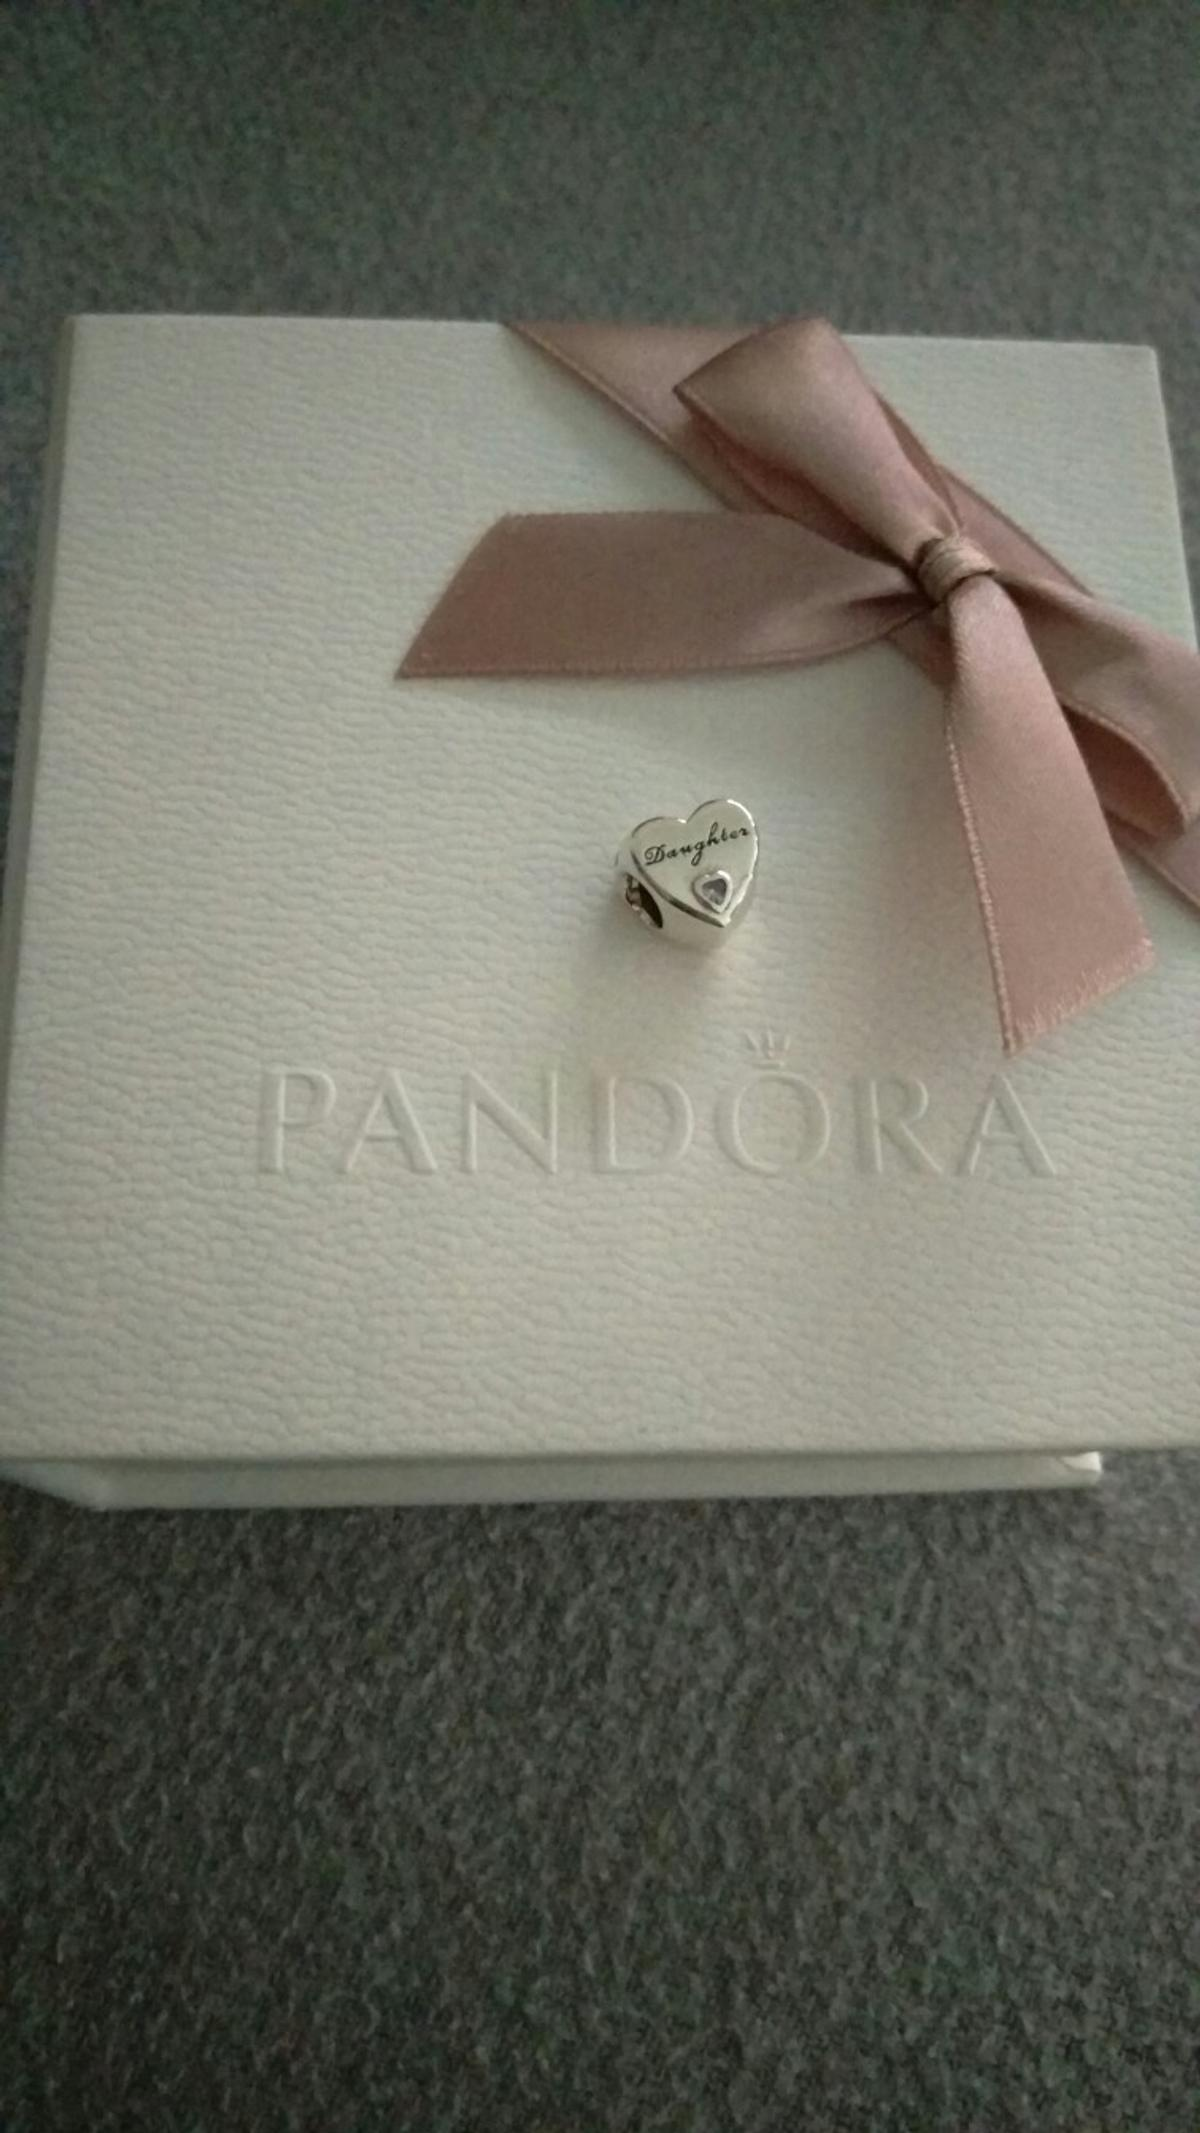 bcda103e4 Pandora Charm Herz - daughter in 04347 Leipzig for €20.00 for sale ...